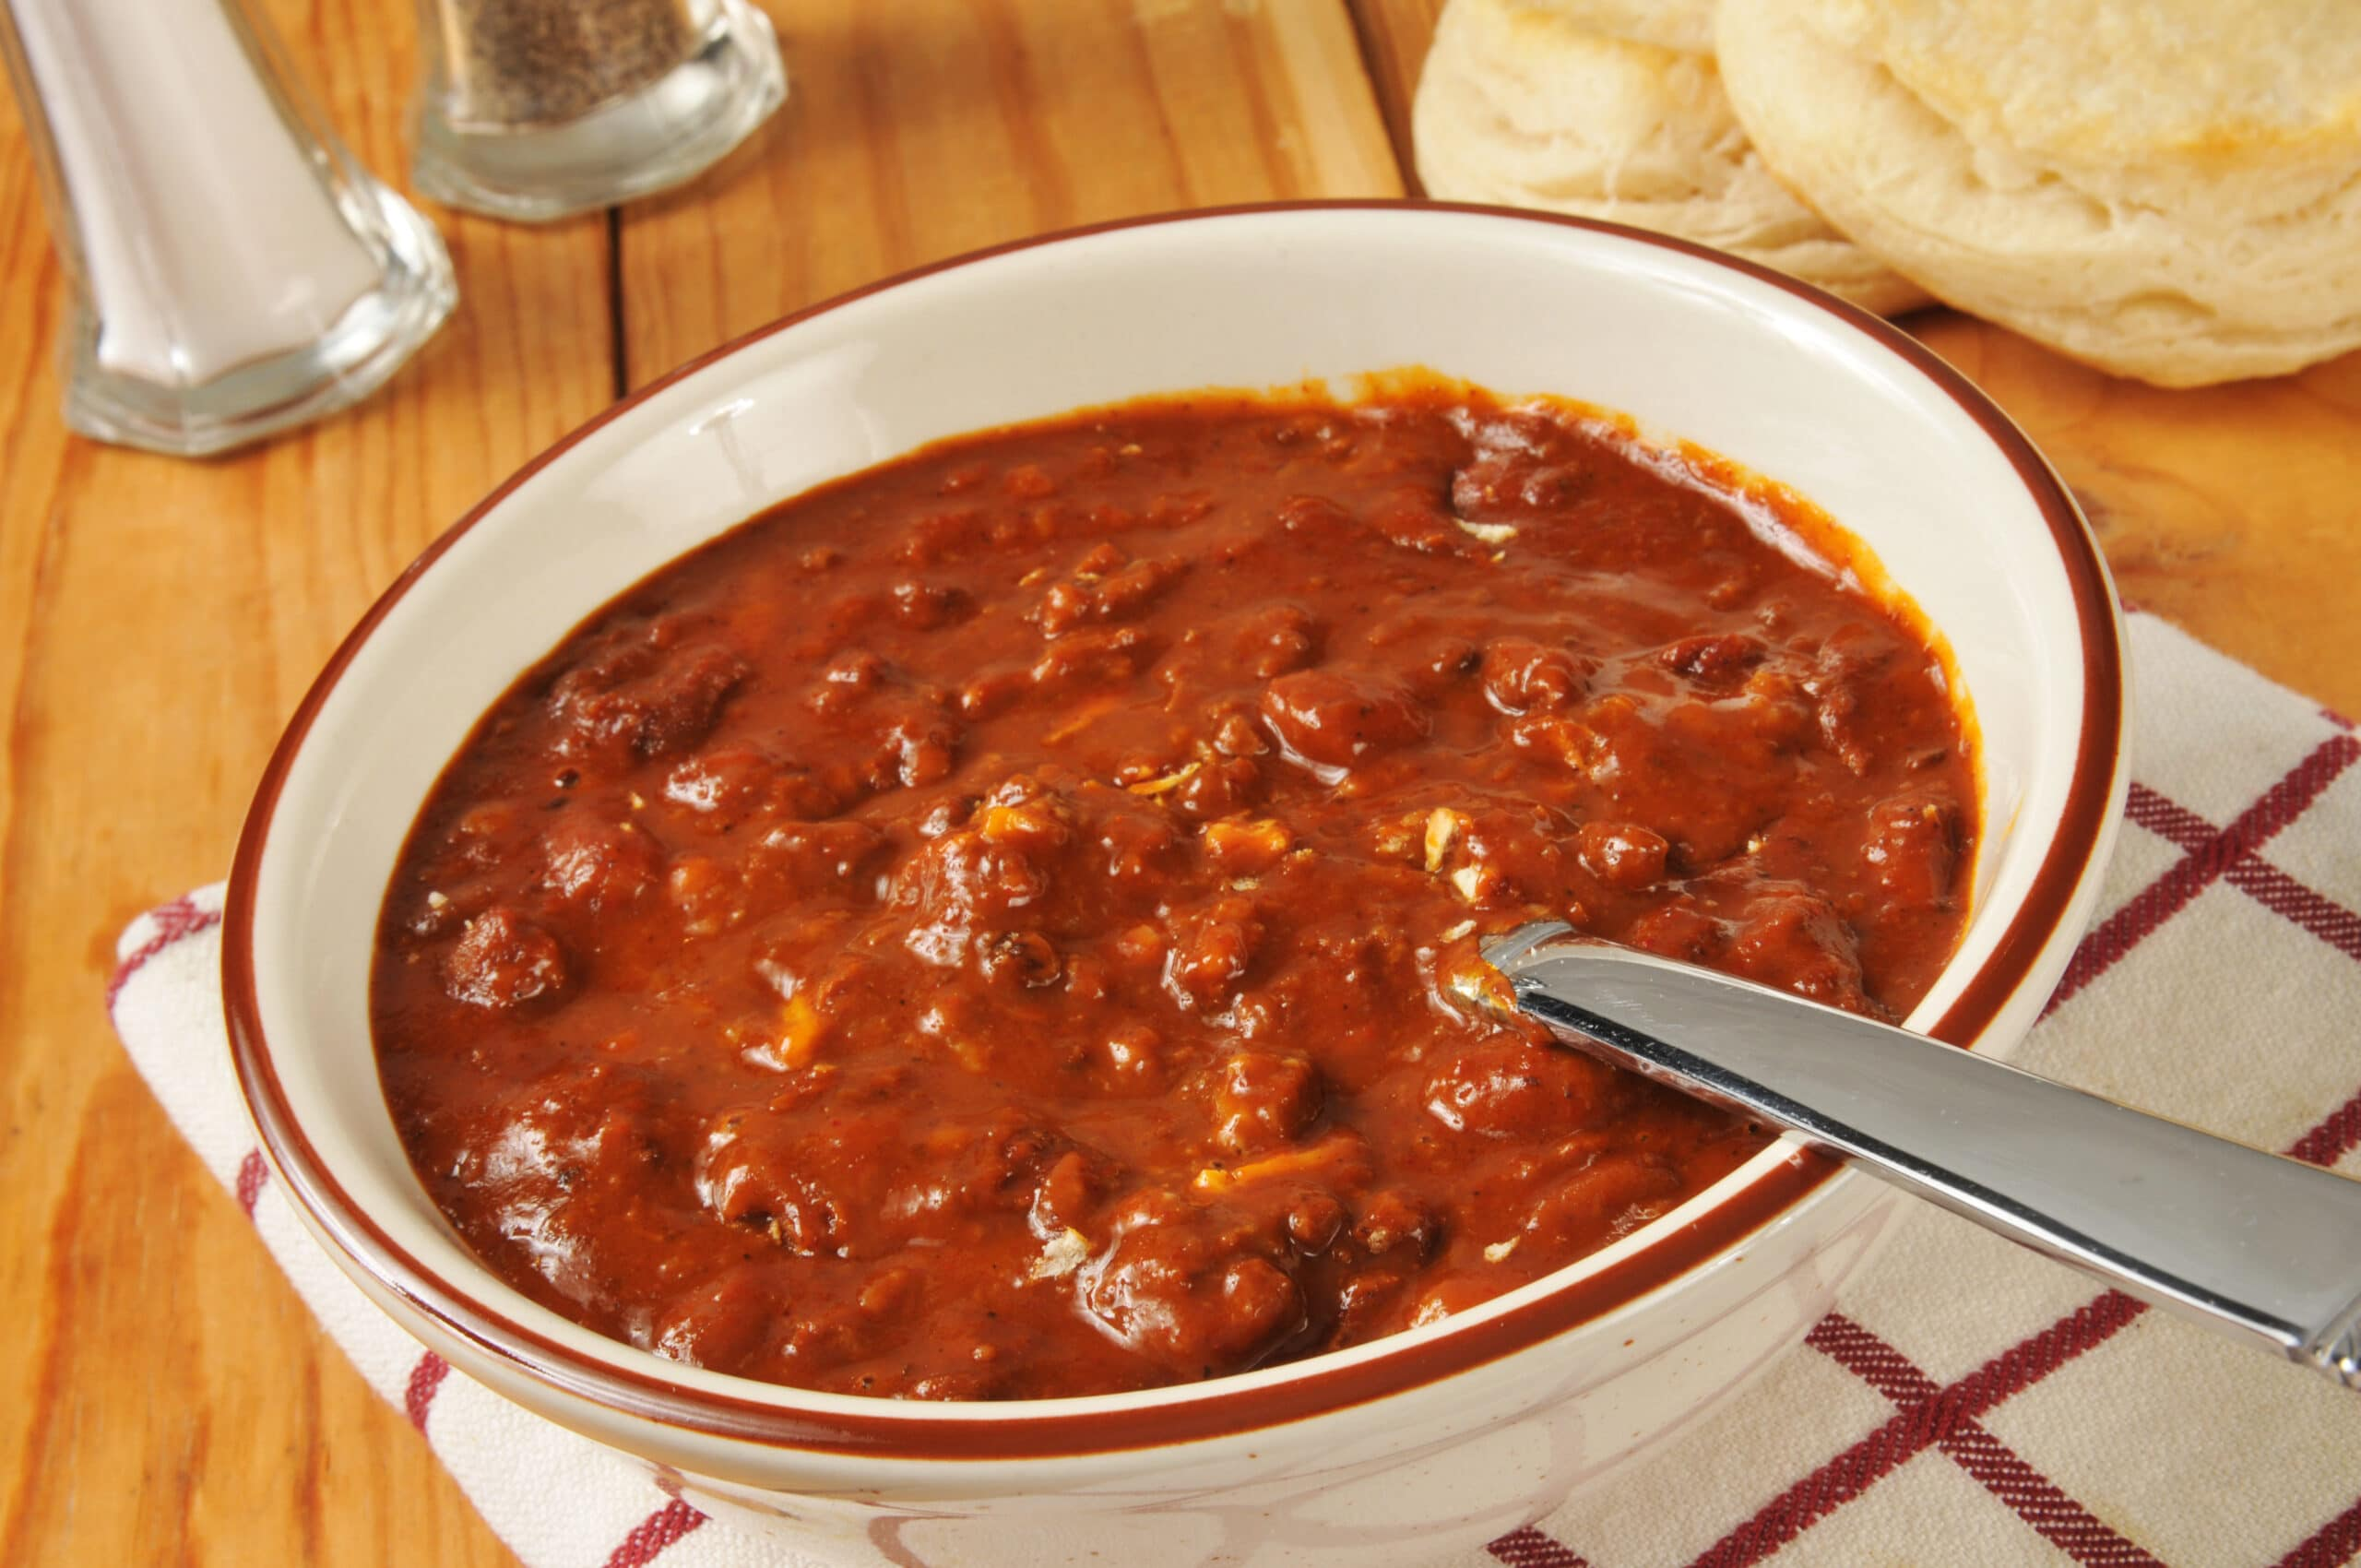 Vegetable and beef chili